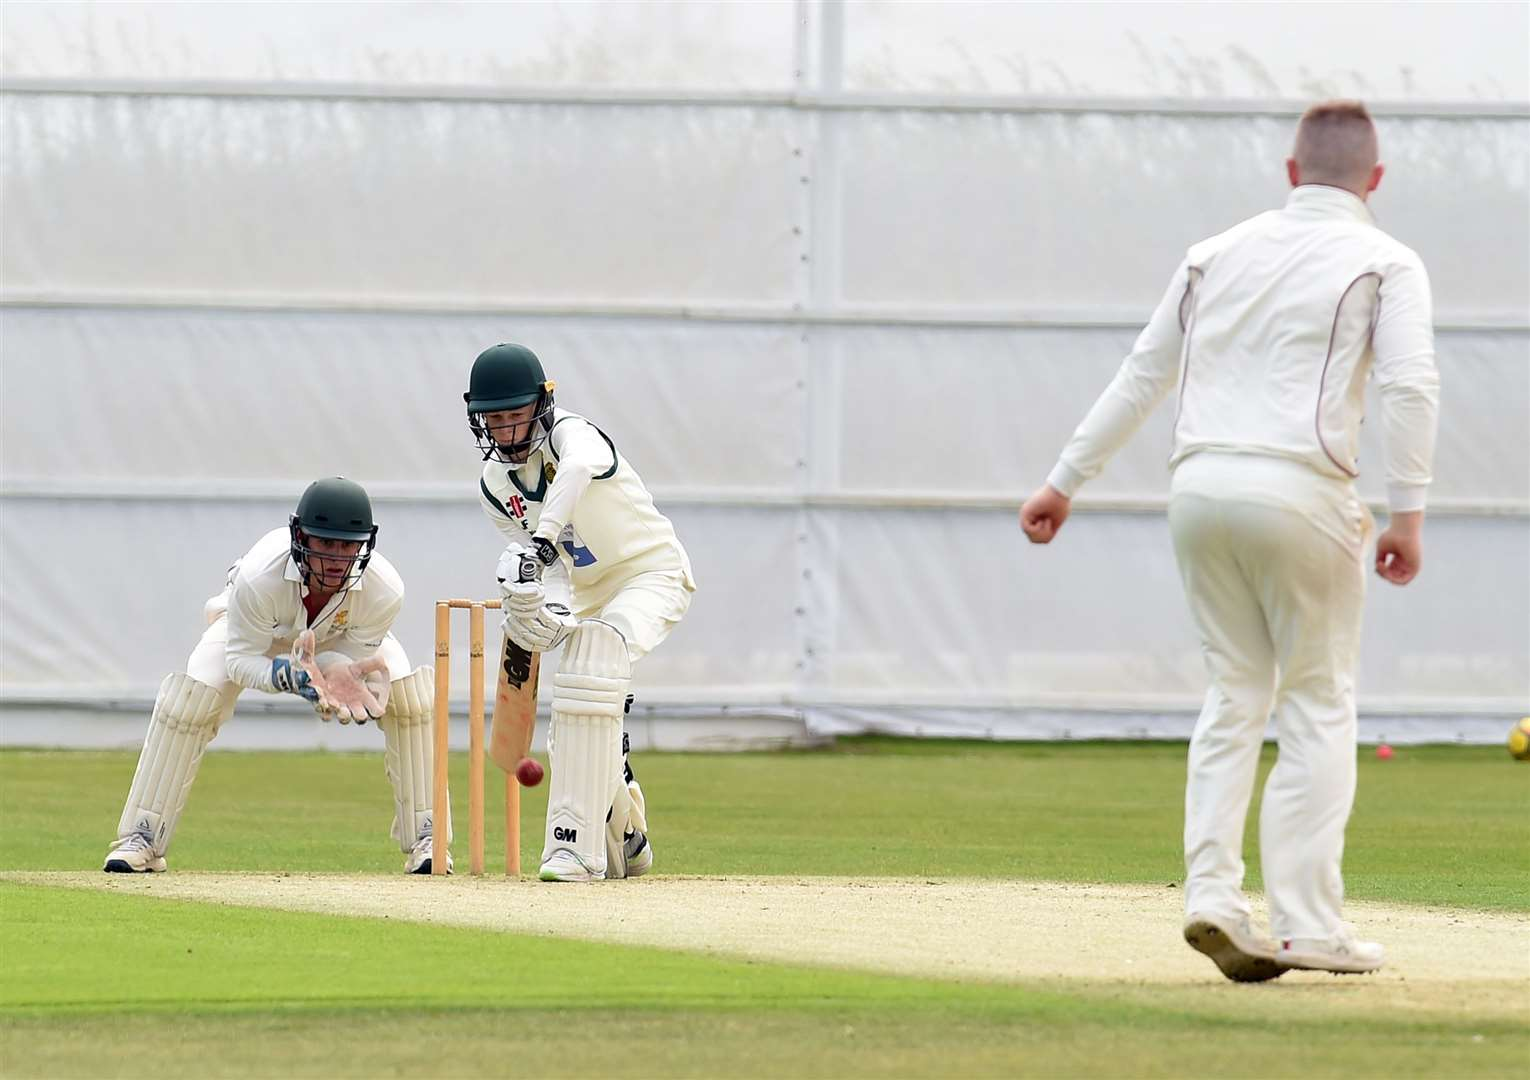 Jaden Fell at the crease for Grantham 2nd XI. (14953682)